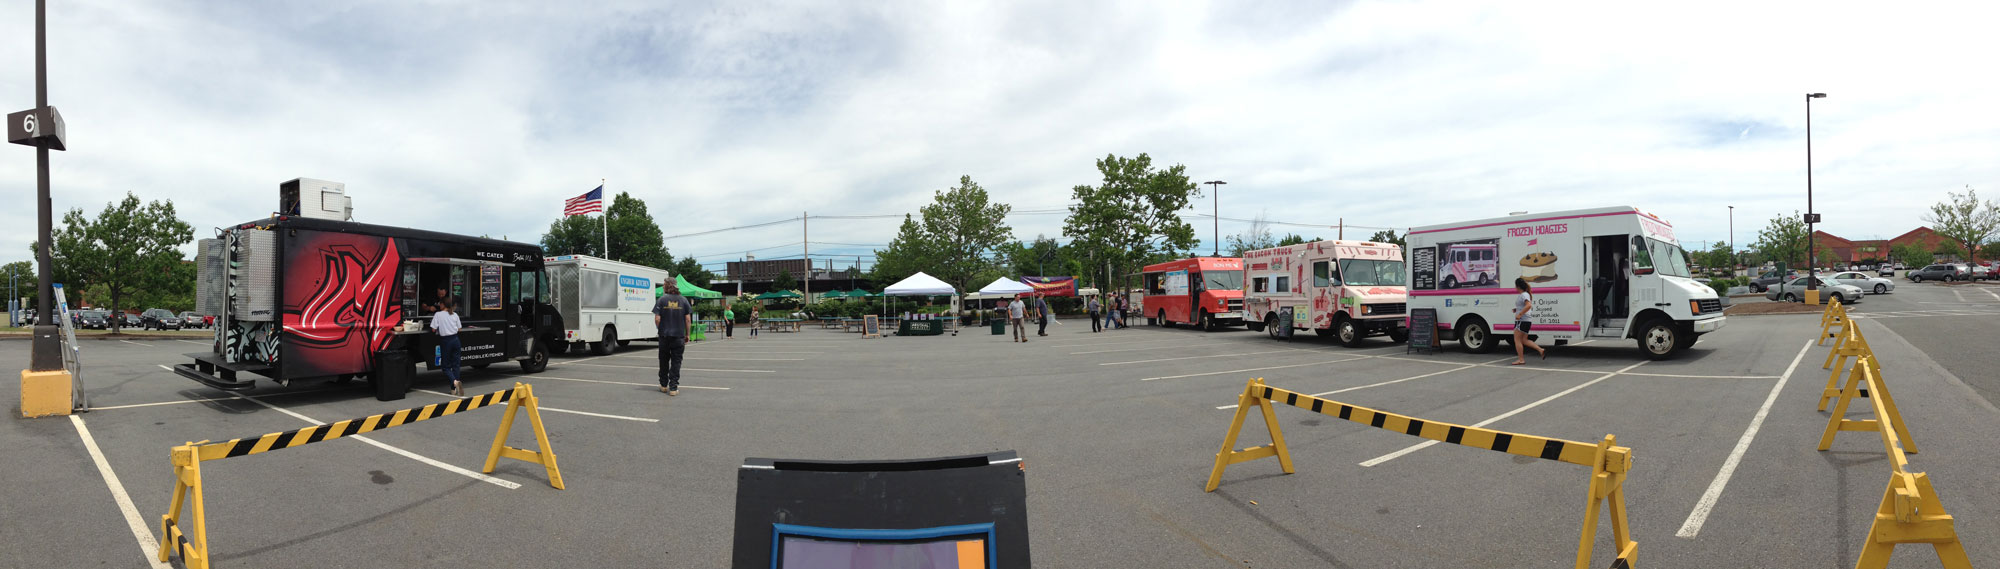 Arsenal-Food-Trucks-Panorama-sm